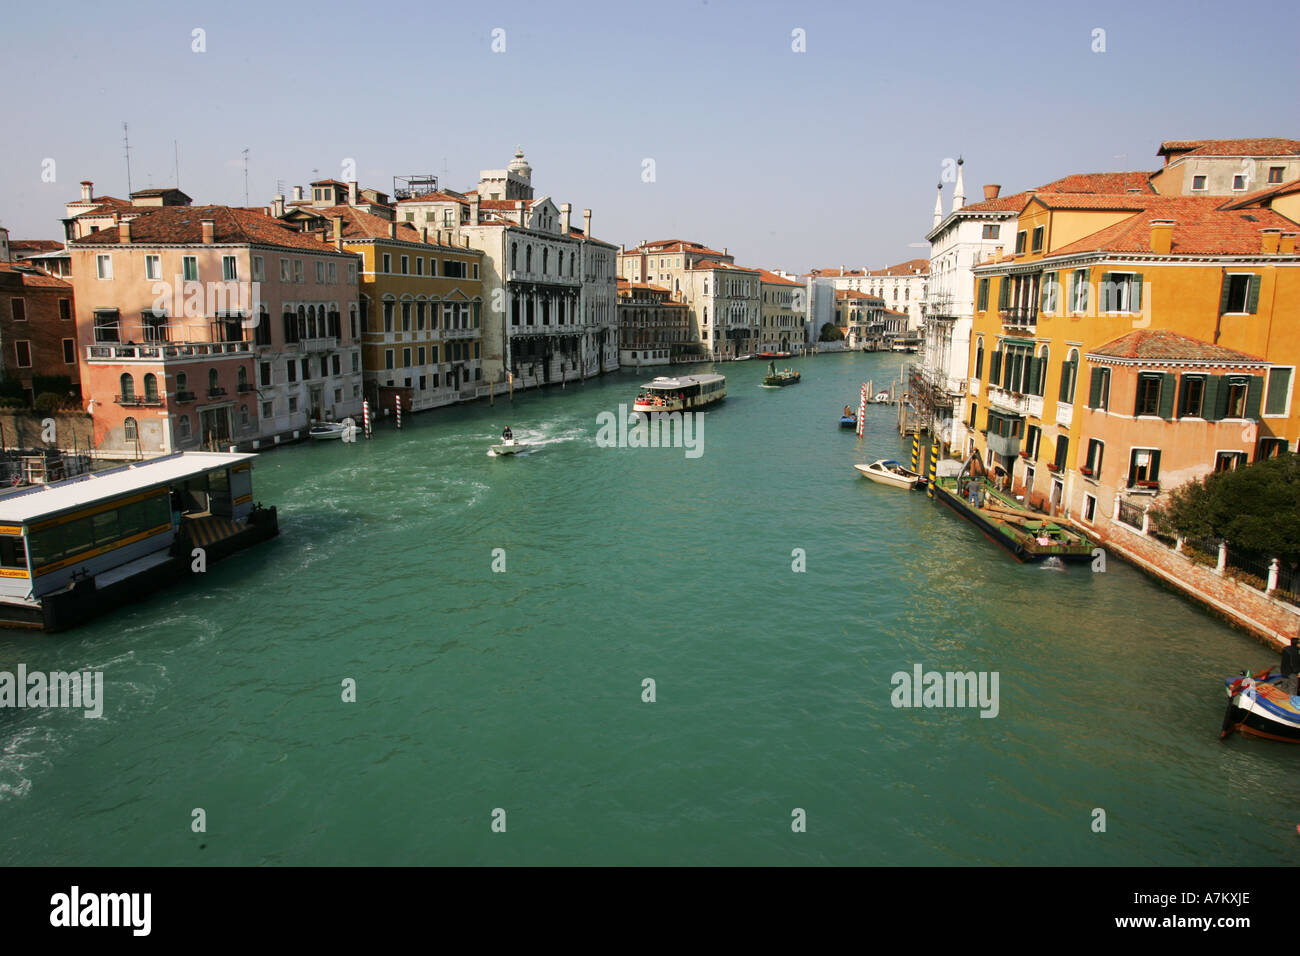 The Grand Canal in central Venice viewed from world famous landmark attraction the Academia bridge ponte dell academia Italy - Stock Image